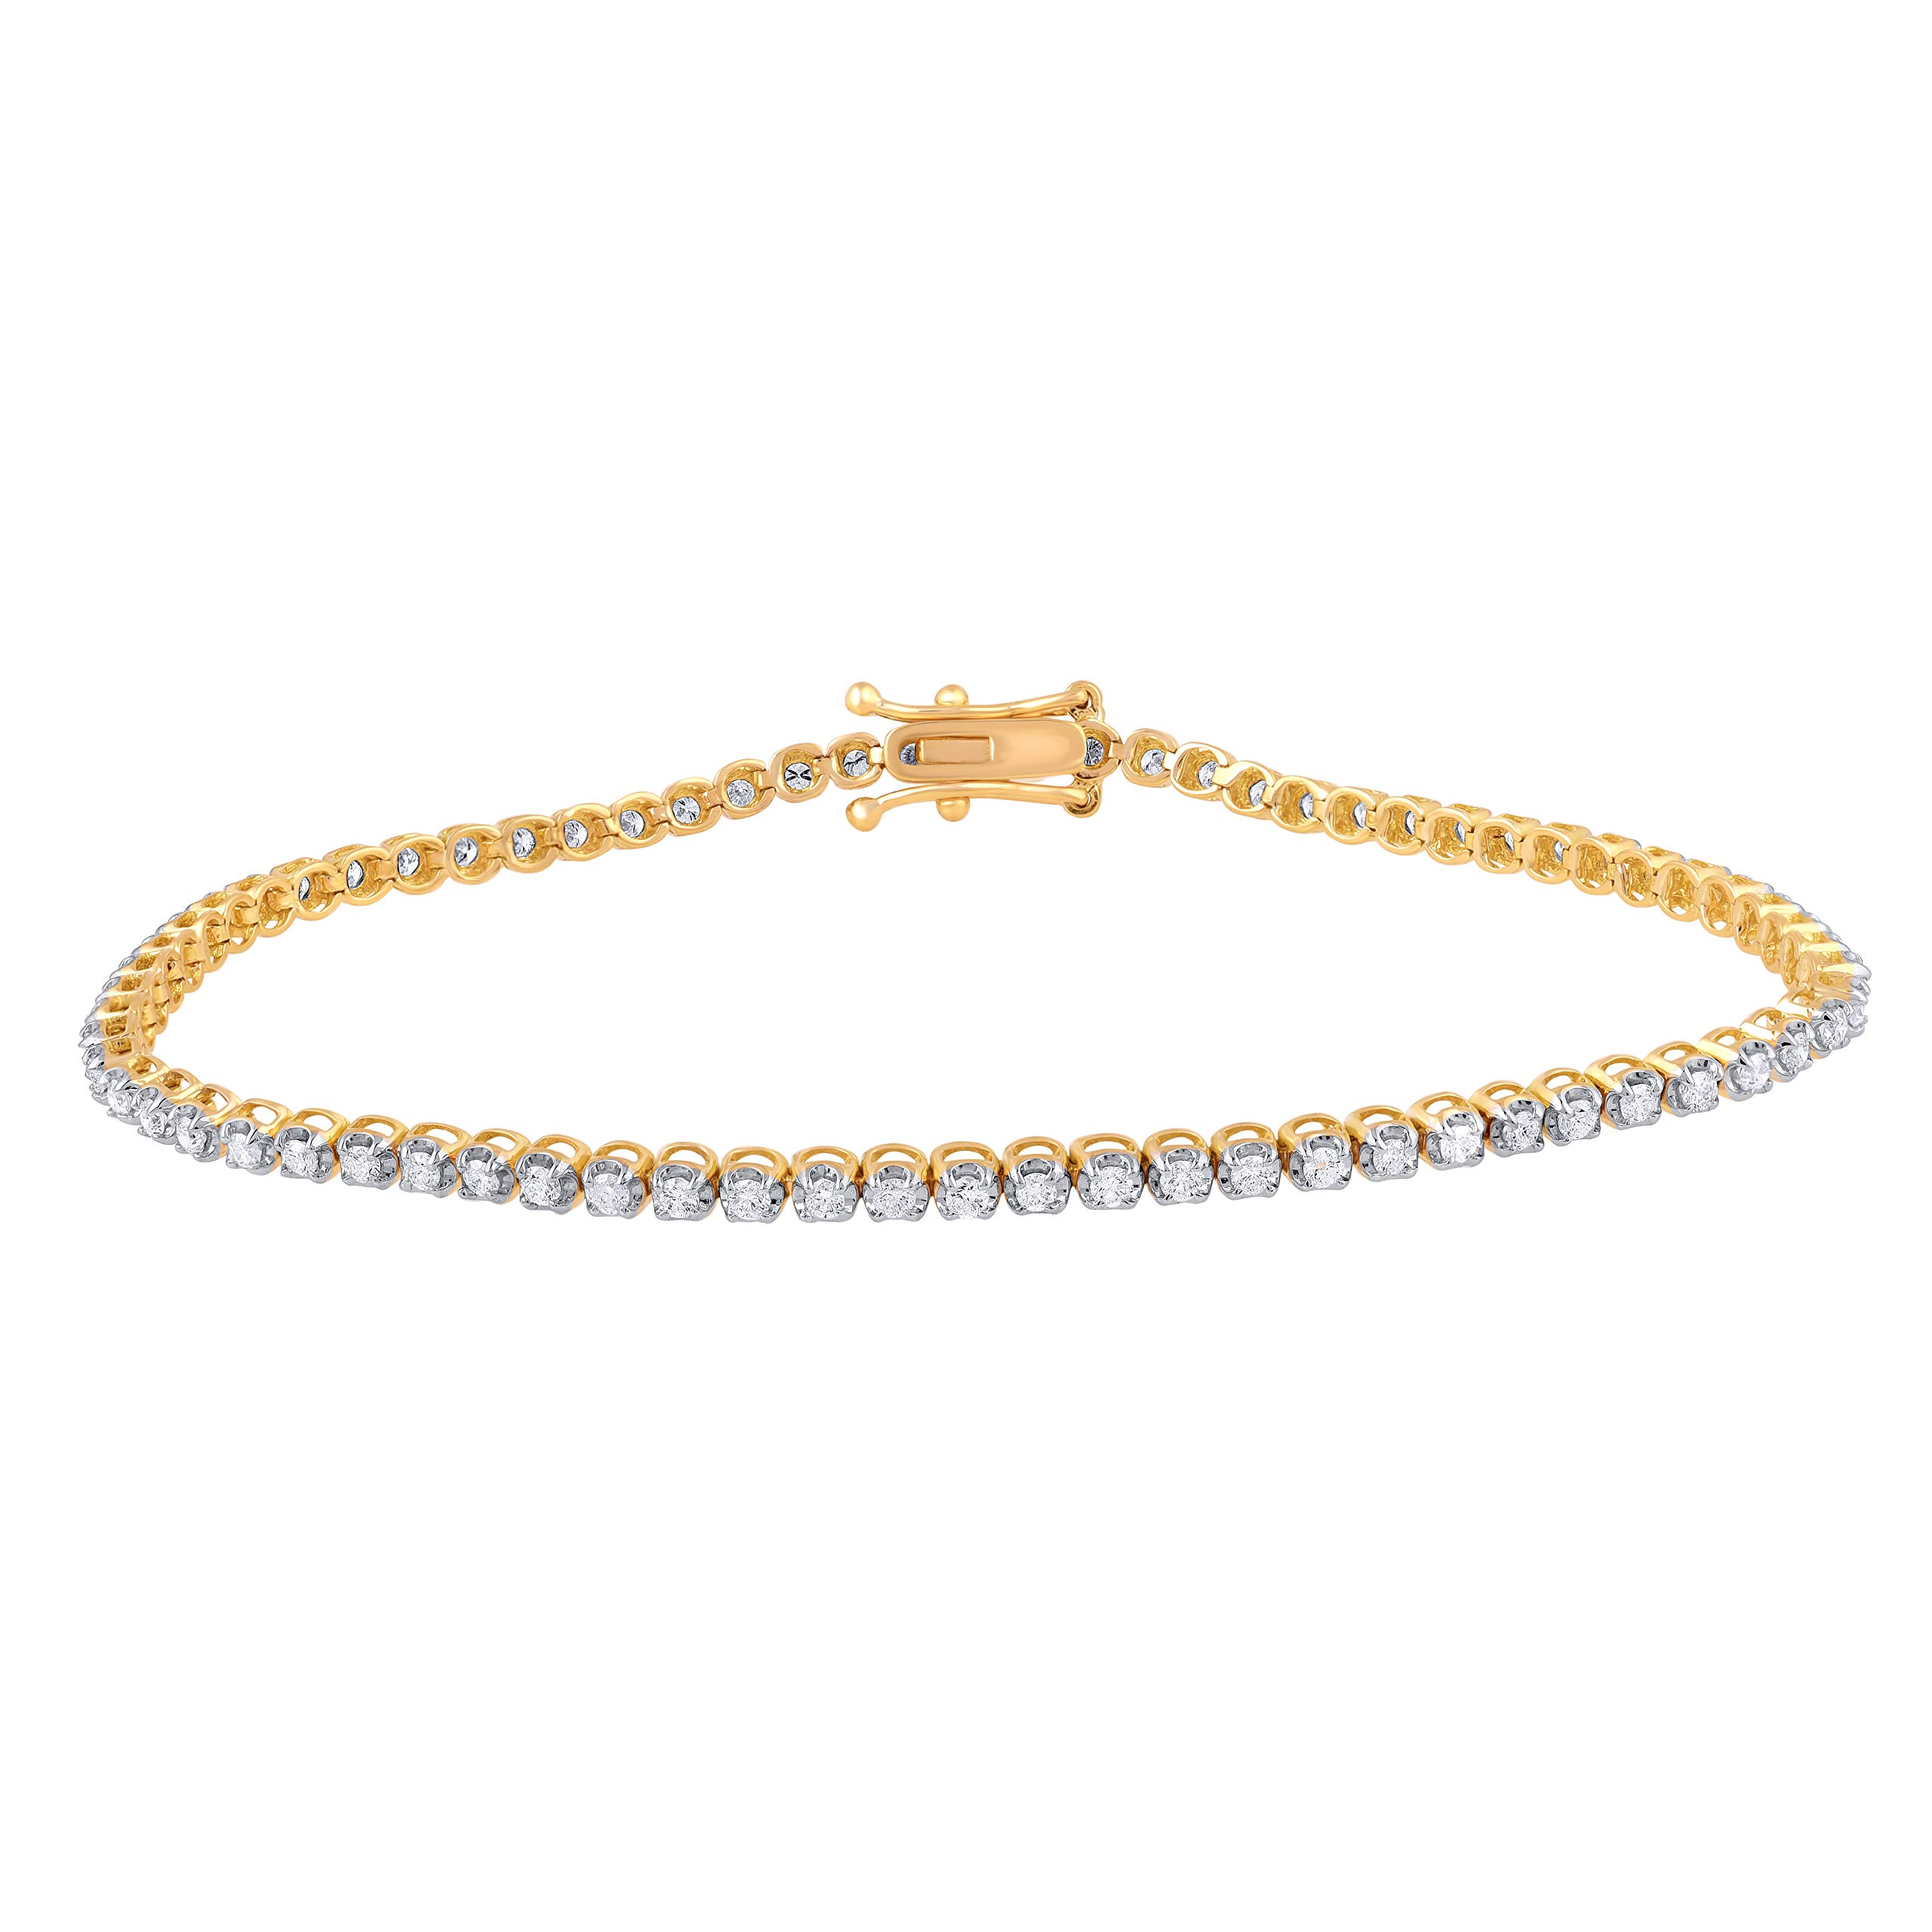 1.00 Carat Natural Diamond Bracelet 18K Yellow Gold (G-H Color, I3 Clarity) Stylish Diamond Tennis Bracelet for Women Diamond Jewelry Gifts for Women